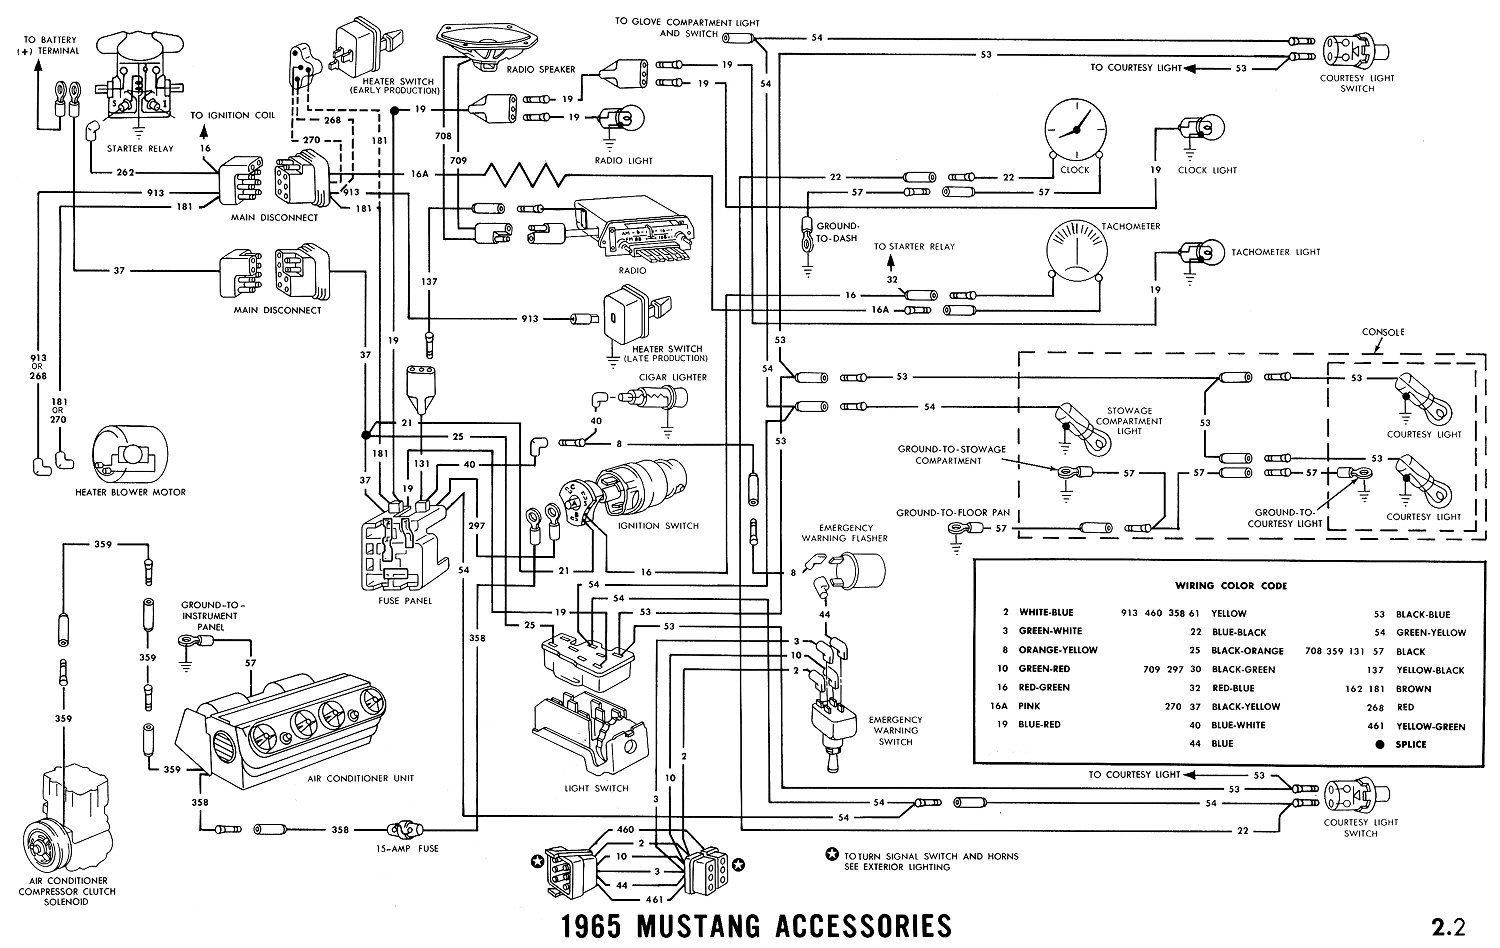 hight resolution of 1965 mustang wiring diagrams average joe restoration 1965 mustang wiring diagram manual 1965 mustang accessories pictorial